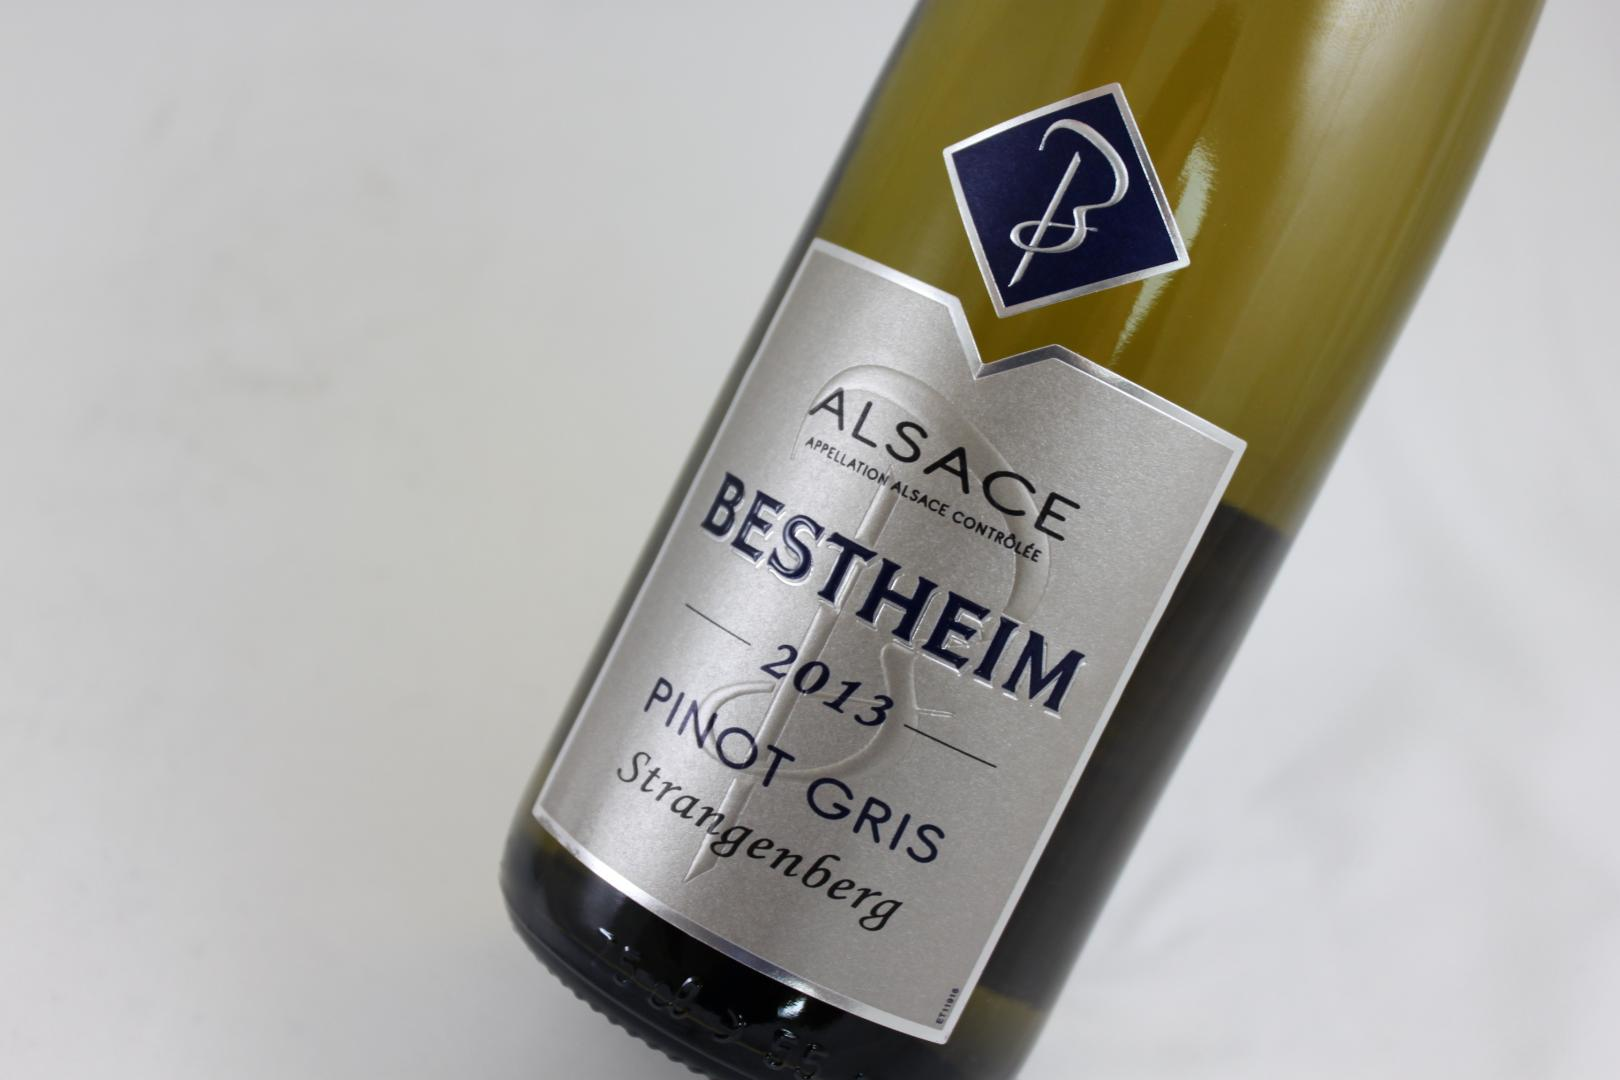 Pinot Gris Strangenberg BESTHEIM ND light